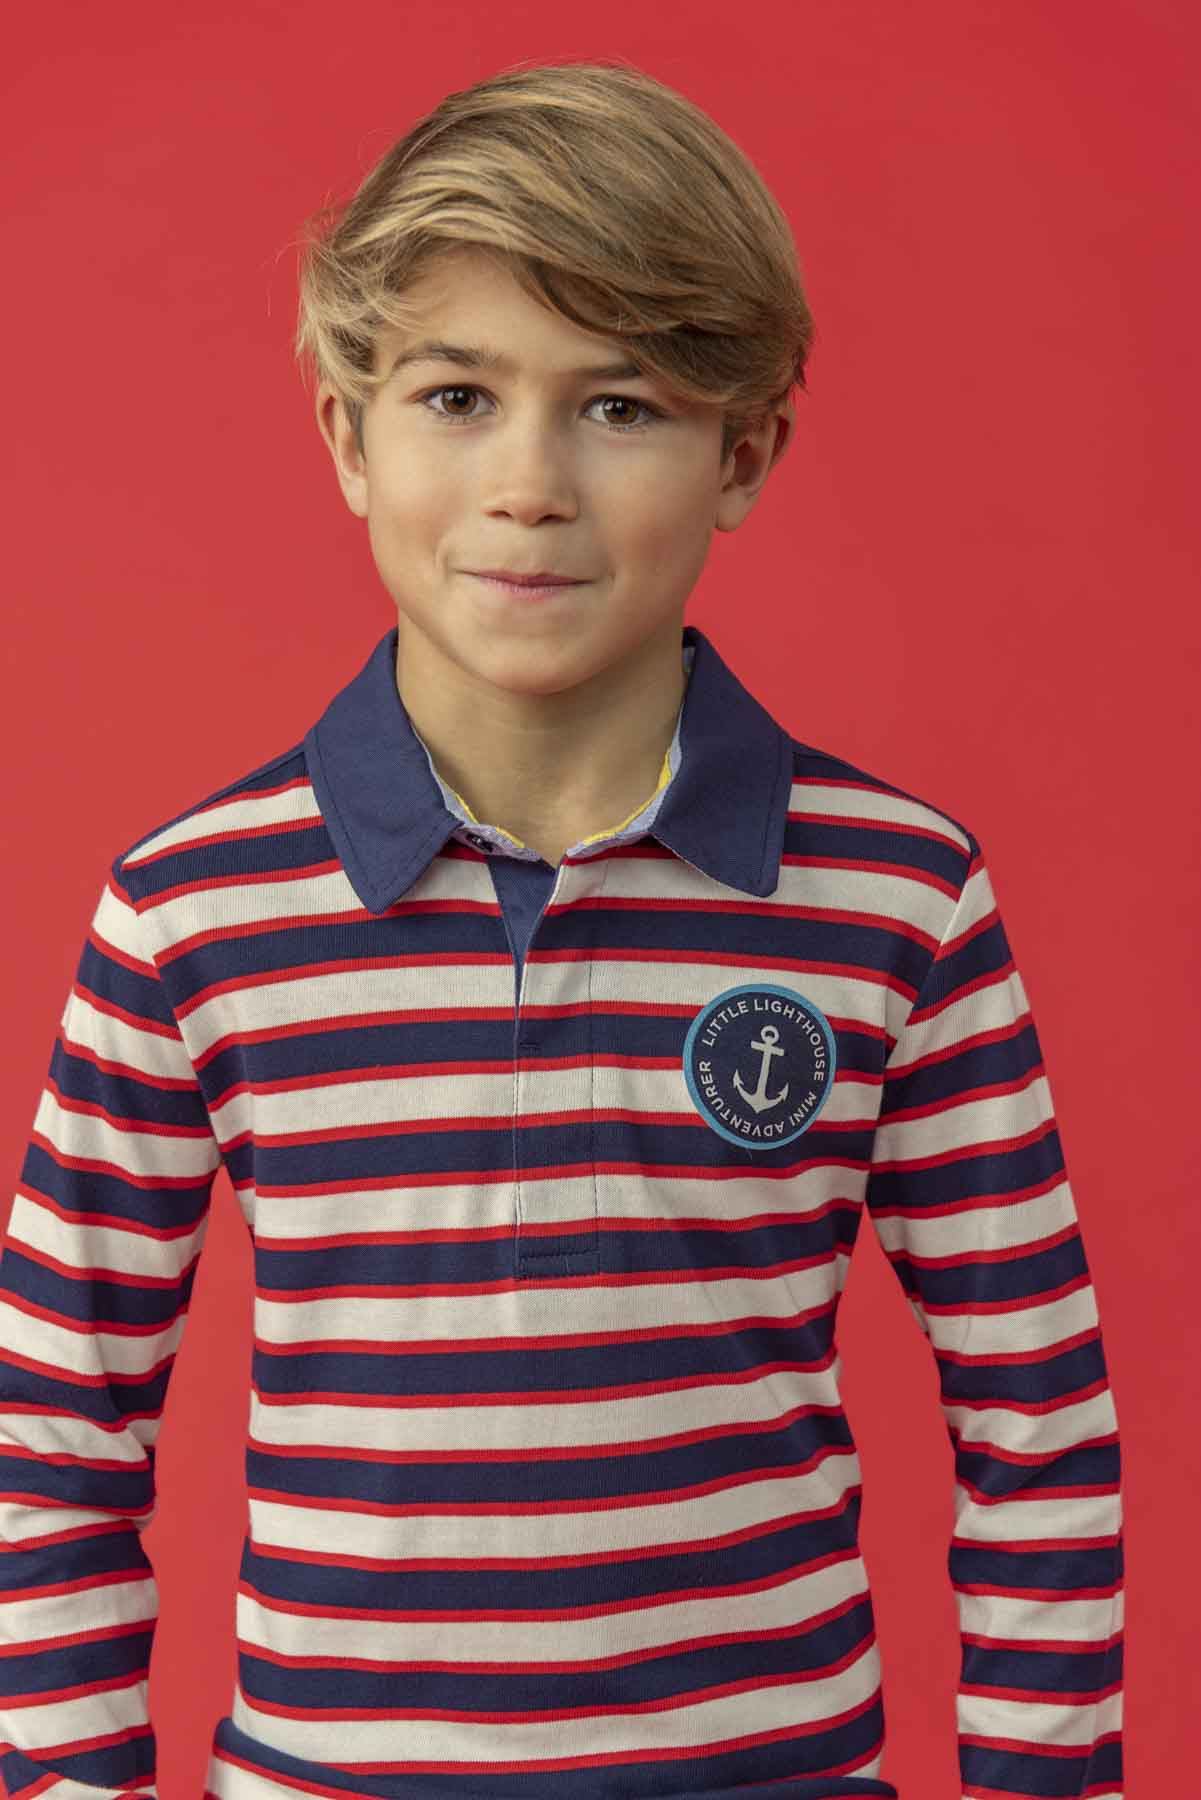 Alfie Boys Striped Rugby Shirt